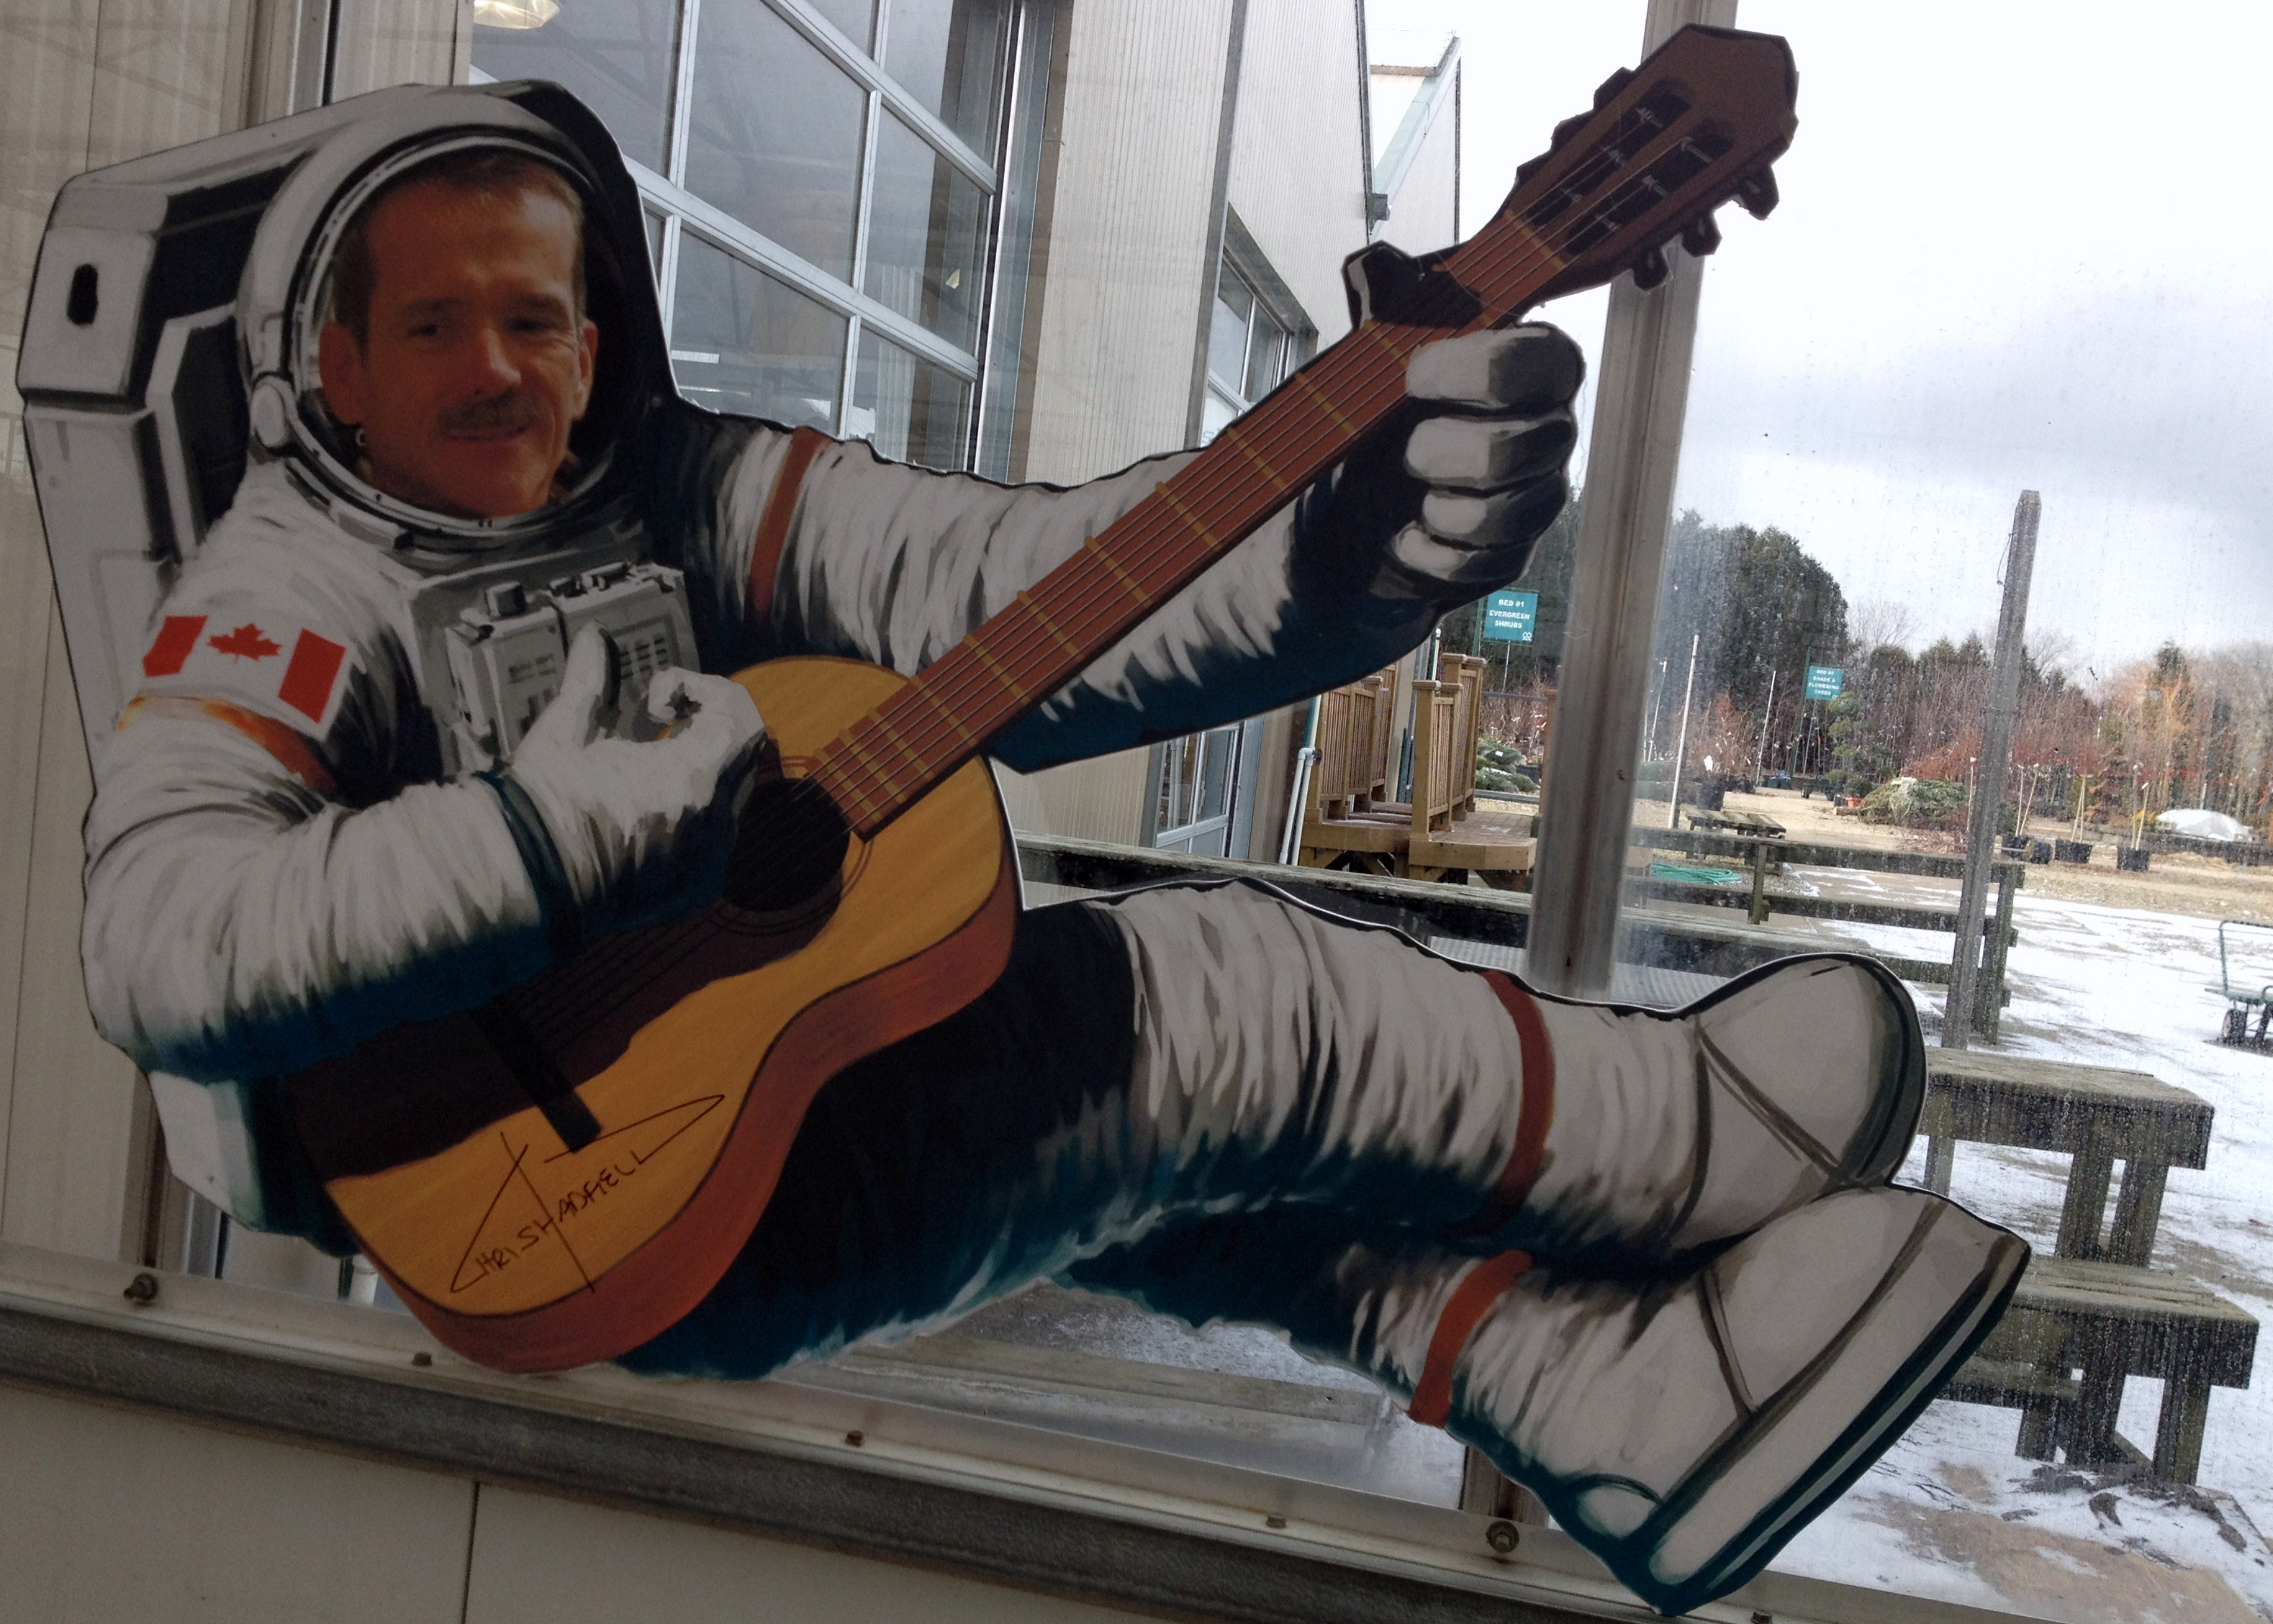 Photos: Chris Hadfield, Canada's Star Astronaut, Hometown Visit